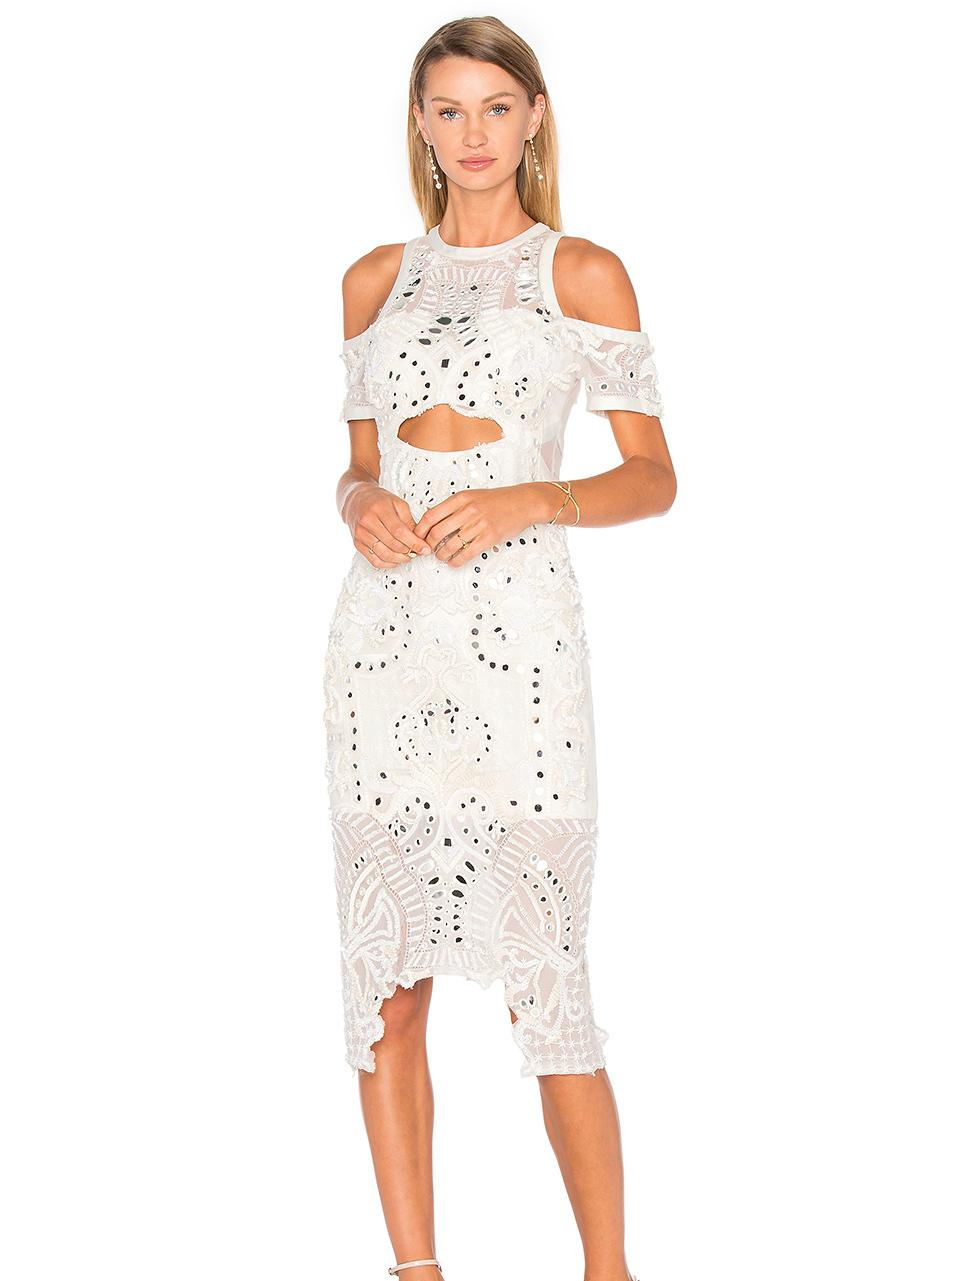 11bd37df51d5 Thurley White Wild Hearts Lace Midi Dress size 10 ...